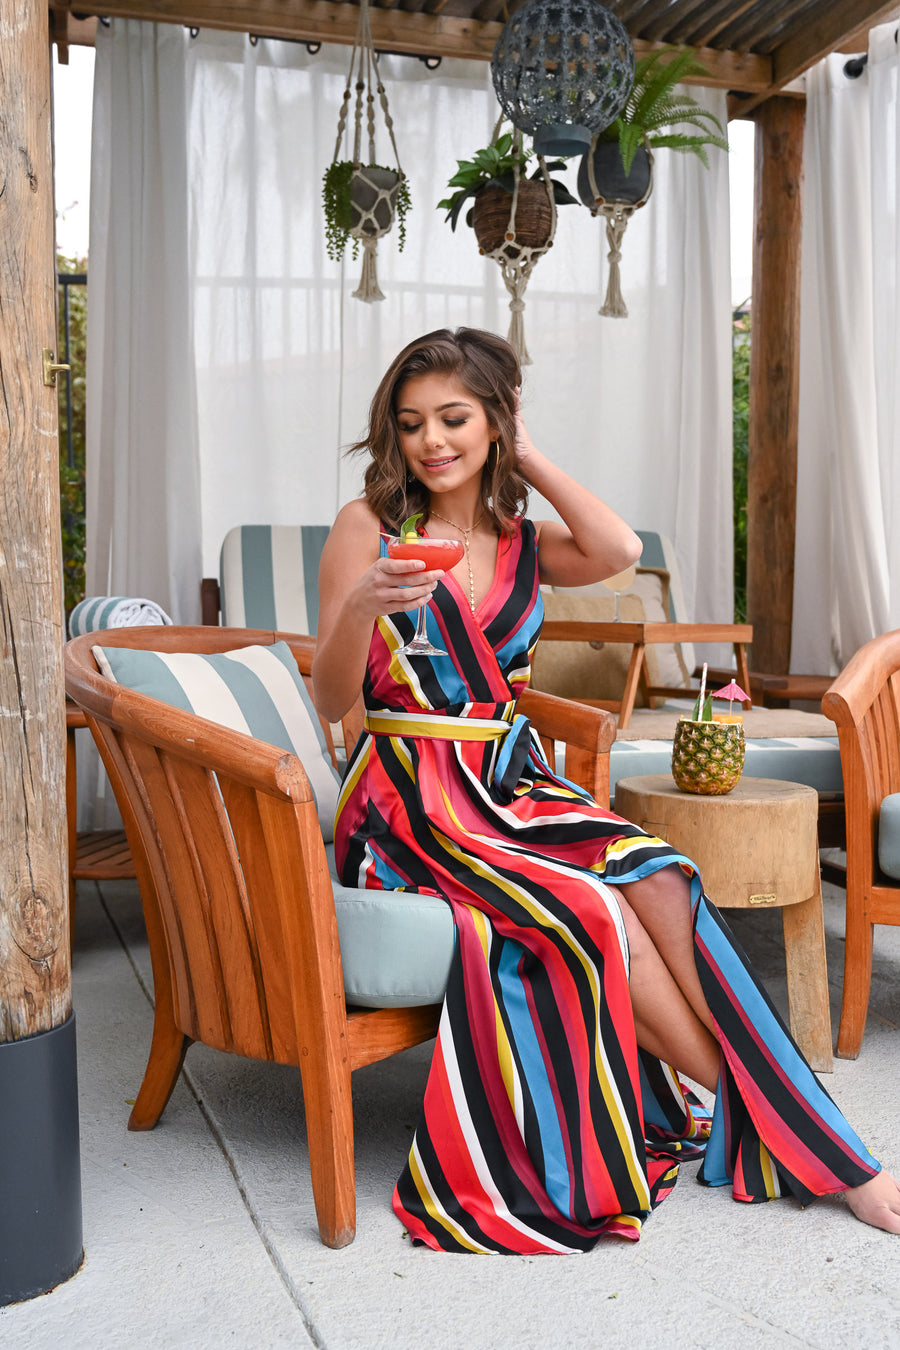 Scottsdale Dreaming Maxi Dress - Multicolor v-neck, silky, flowy dress, Closet Candy Boutique 1